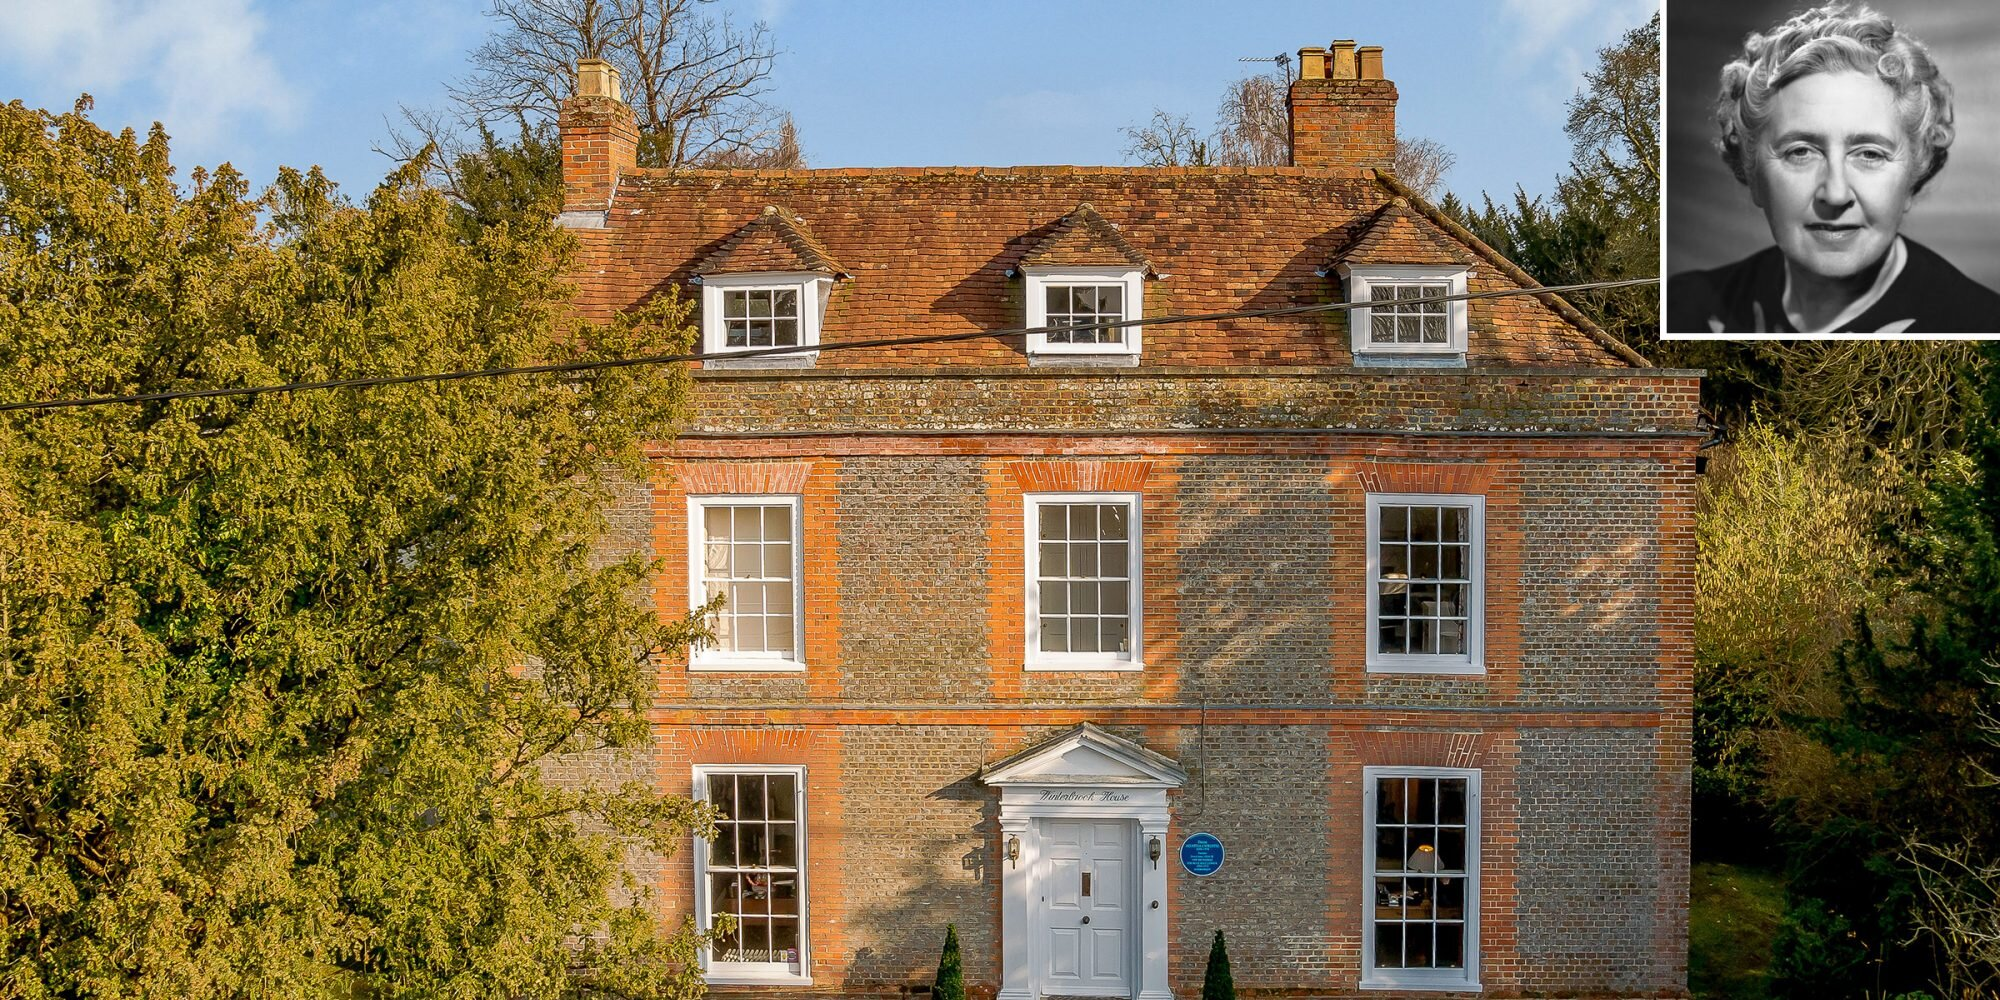 Agatha Christie Fans Are Plotting to Turn Her $3.8 Million English Home into a Literary Center